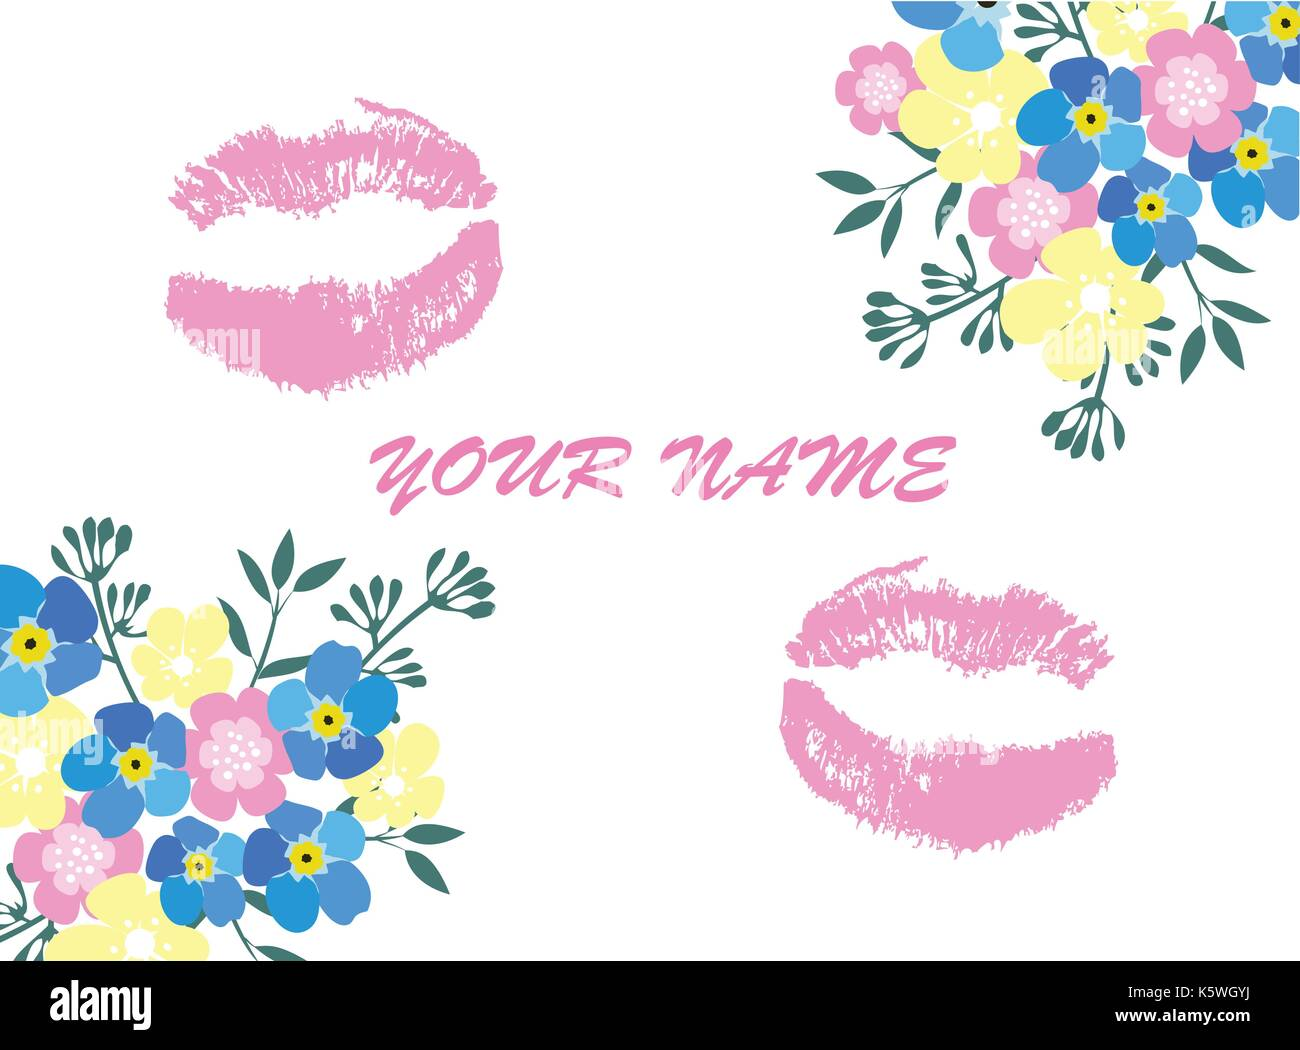 vector illustration of floral business card with lipstick kiss Stock ...